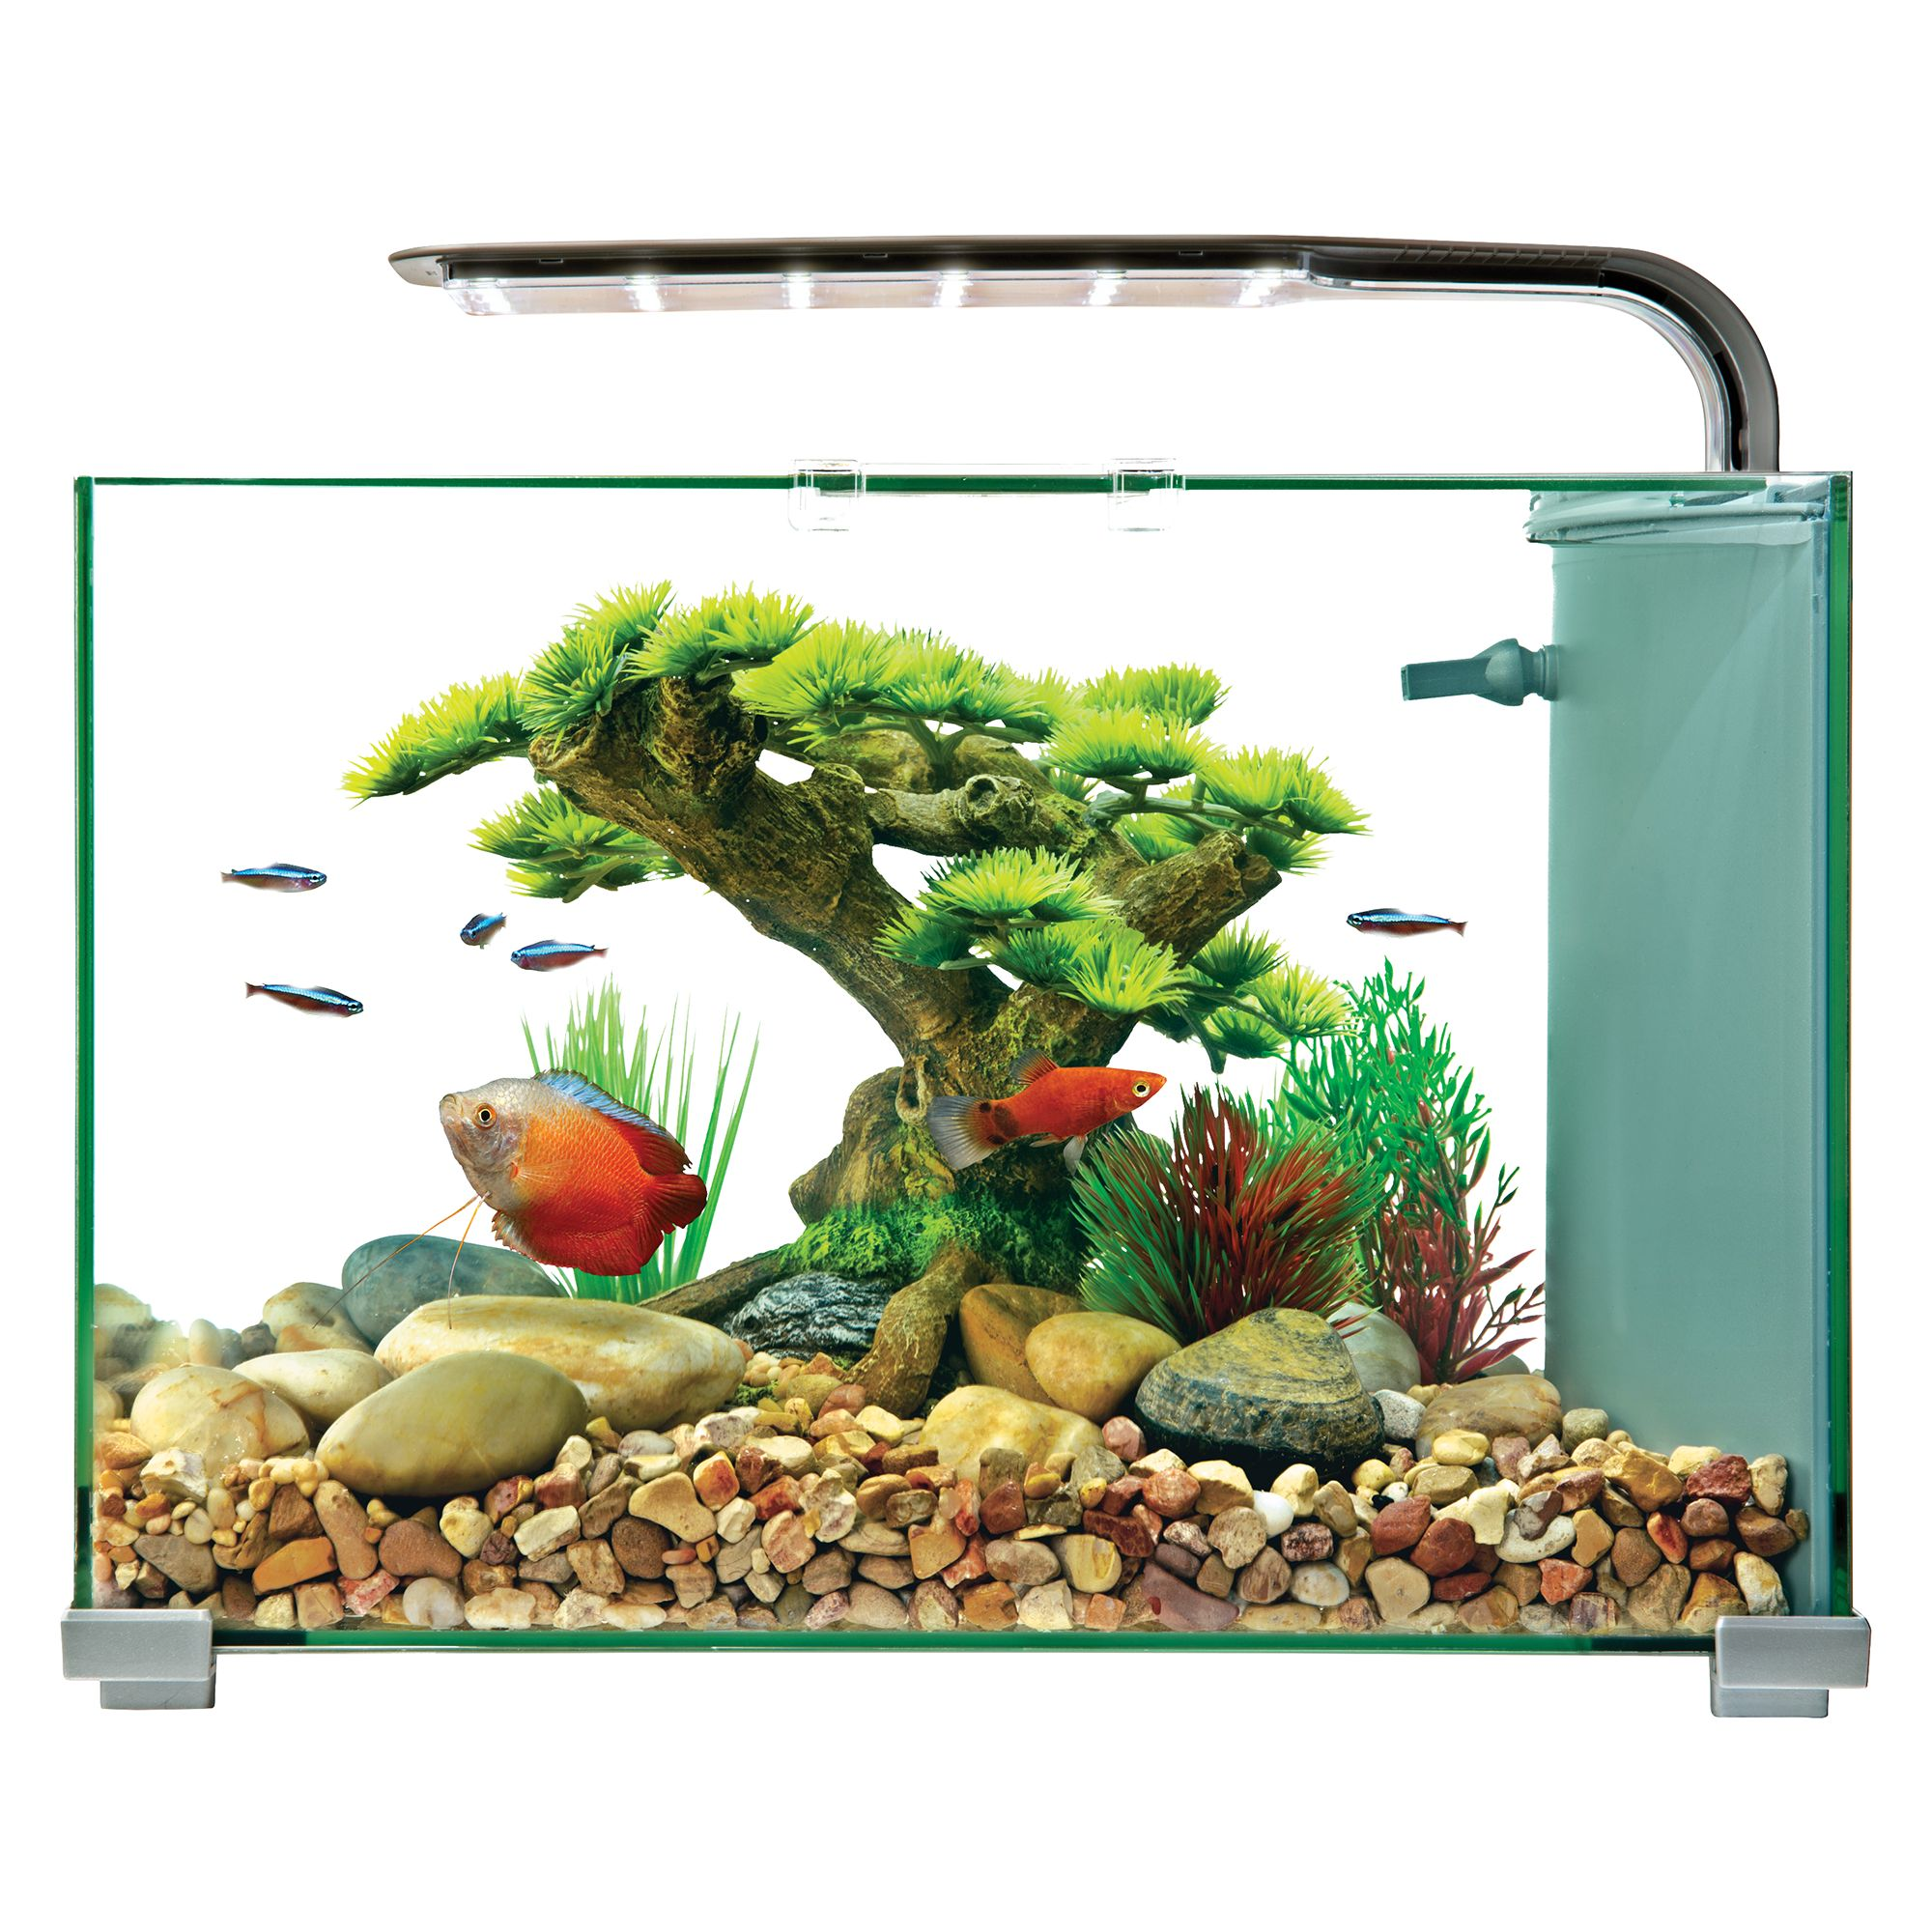 Top Fin Retreat Aquarium Fish Starter Kits Petsmart